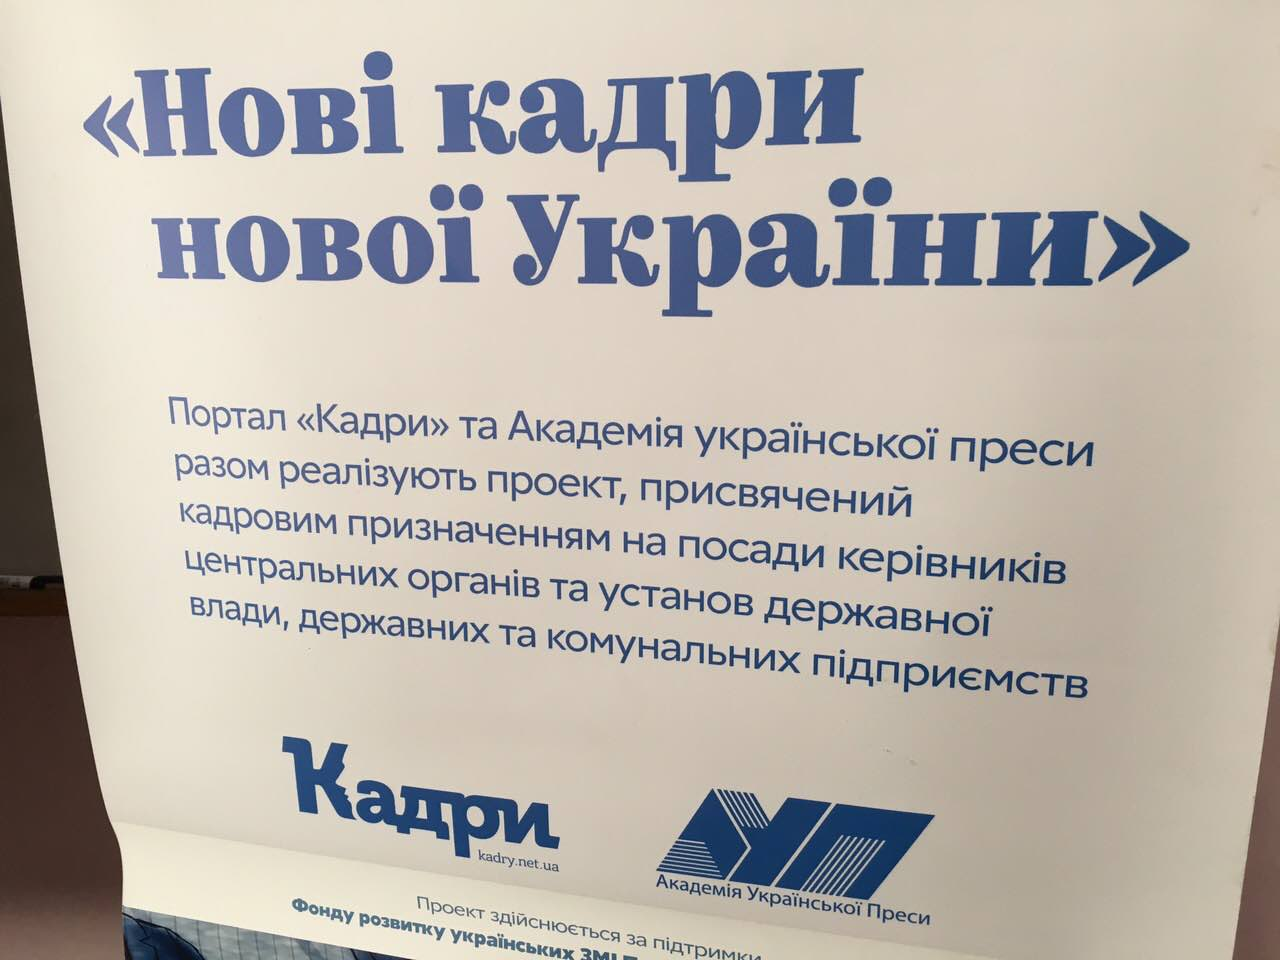 JOURNALISTS FROM ZAPORIZHZHYA CHOSE A NEW FOCUS OF RECRUITING COMPETITION COVERAGE